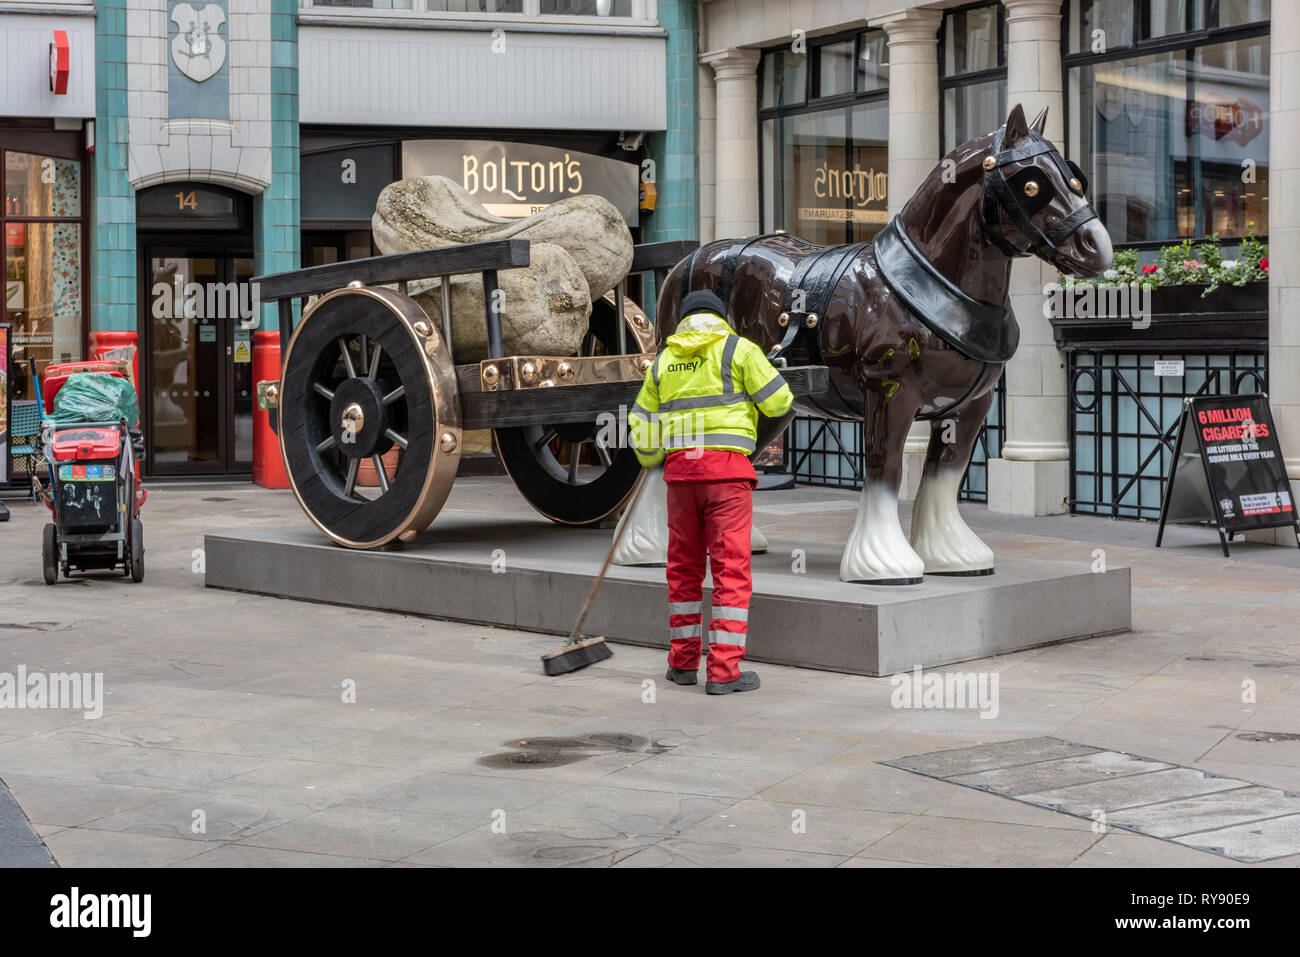 Sarah Lucas's sculpture of 'Perceval' in Cullum St, City of London - Stock Image